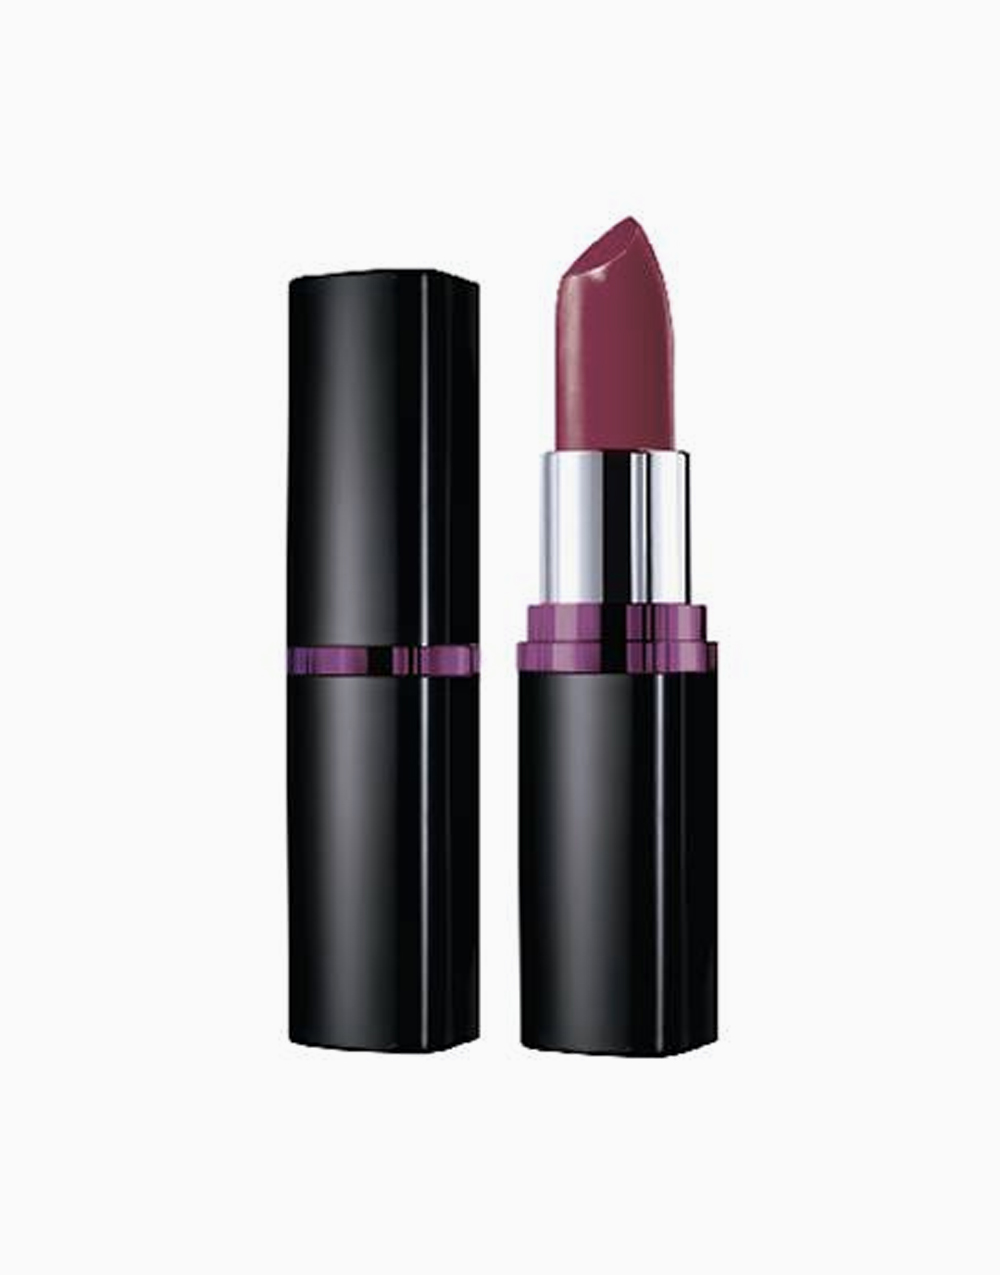 ColorSensational Vivid Creamy Matte Lipstick by Maybelline | Madly Magenta